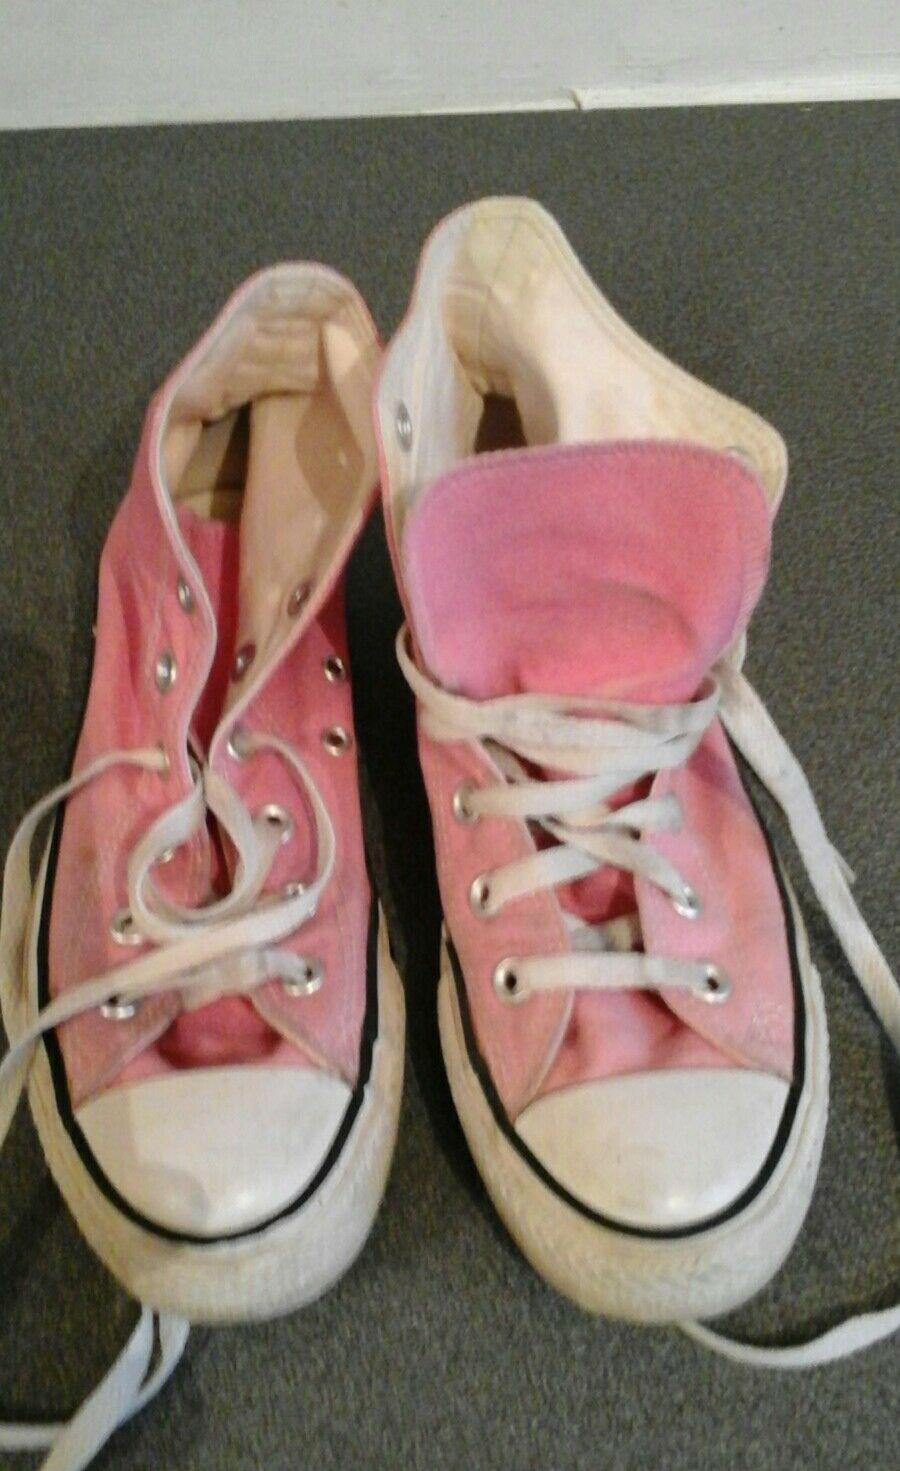 Converse marks pink, used, UK5, surface marks Converse and wear shown 23afe7